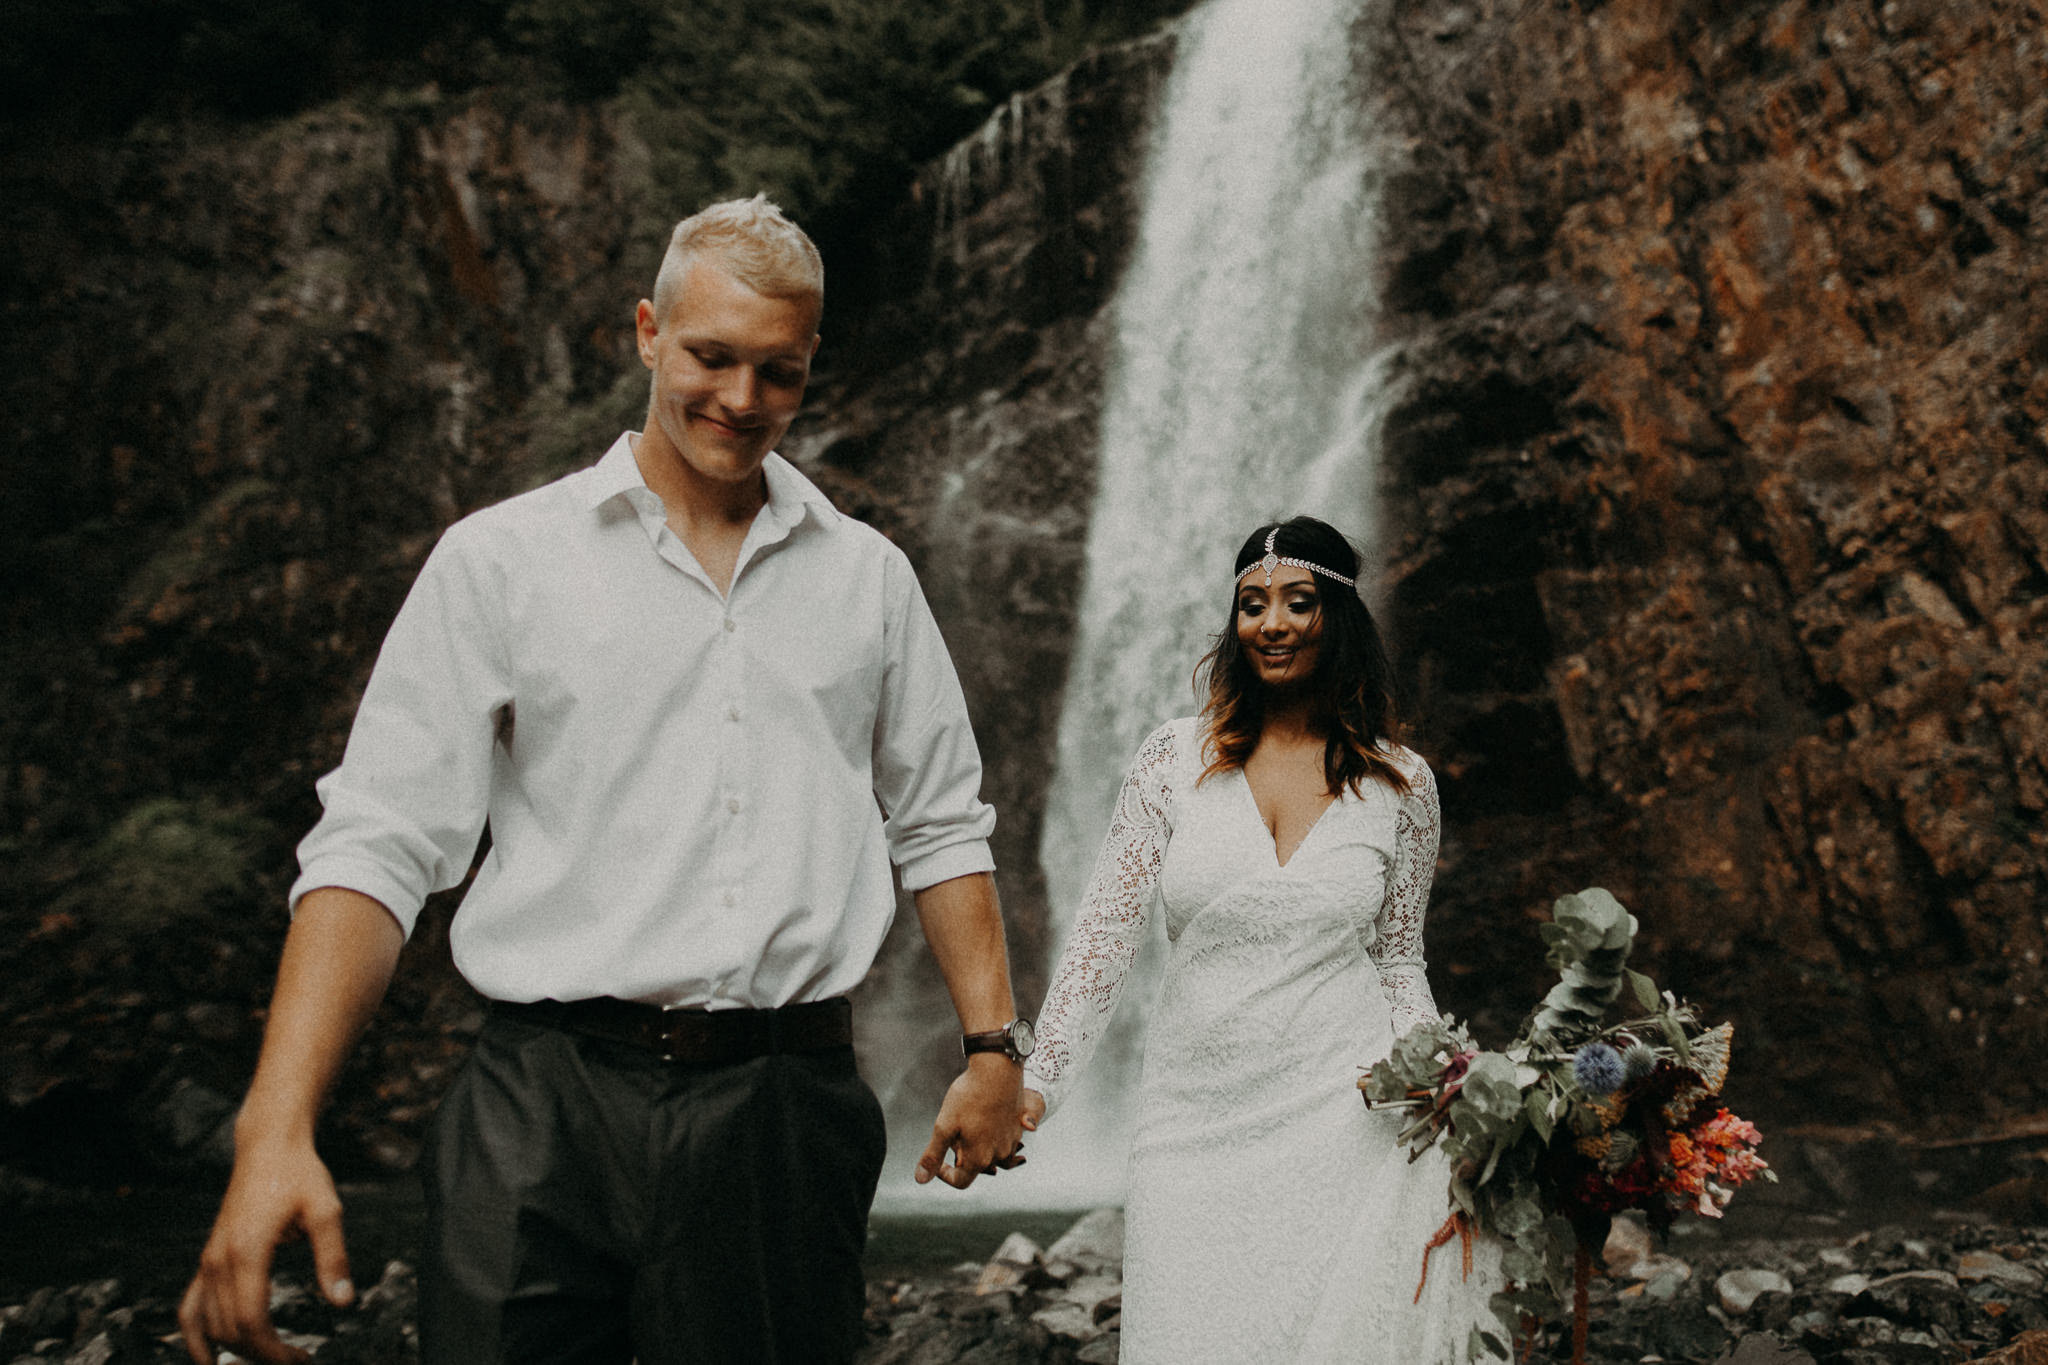 Kamra Fuller Photography - Seattle Wedding Photographer - Seattle Elopement Photographer - Port Angeles Wedding Photographer - Boho - Bohemian - Waterfall Elopement - PNW Wedding Photographer